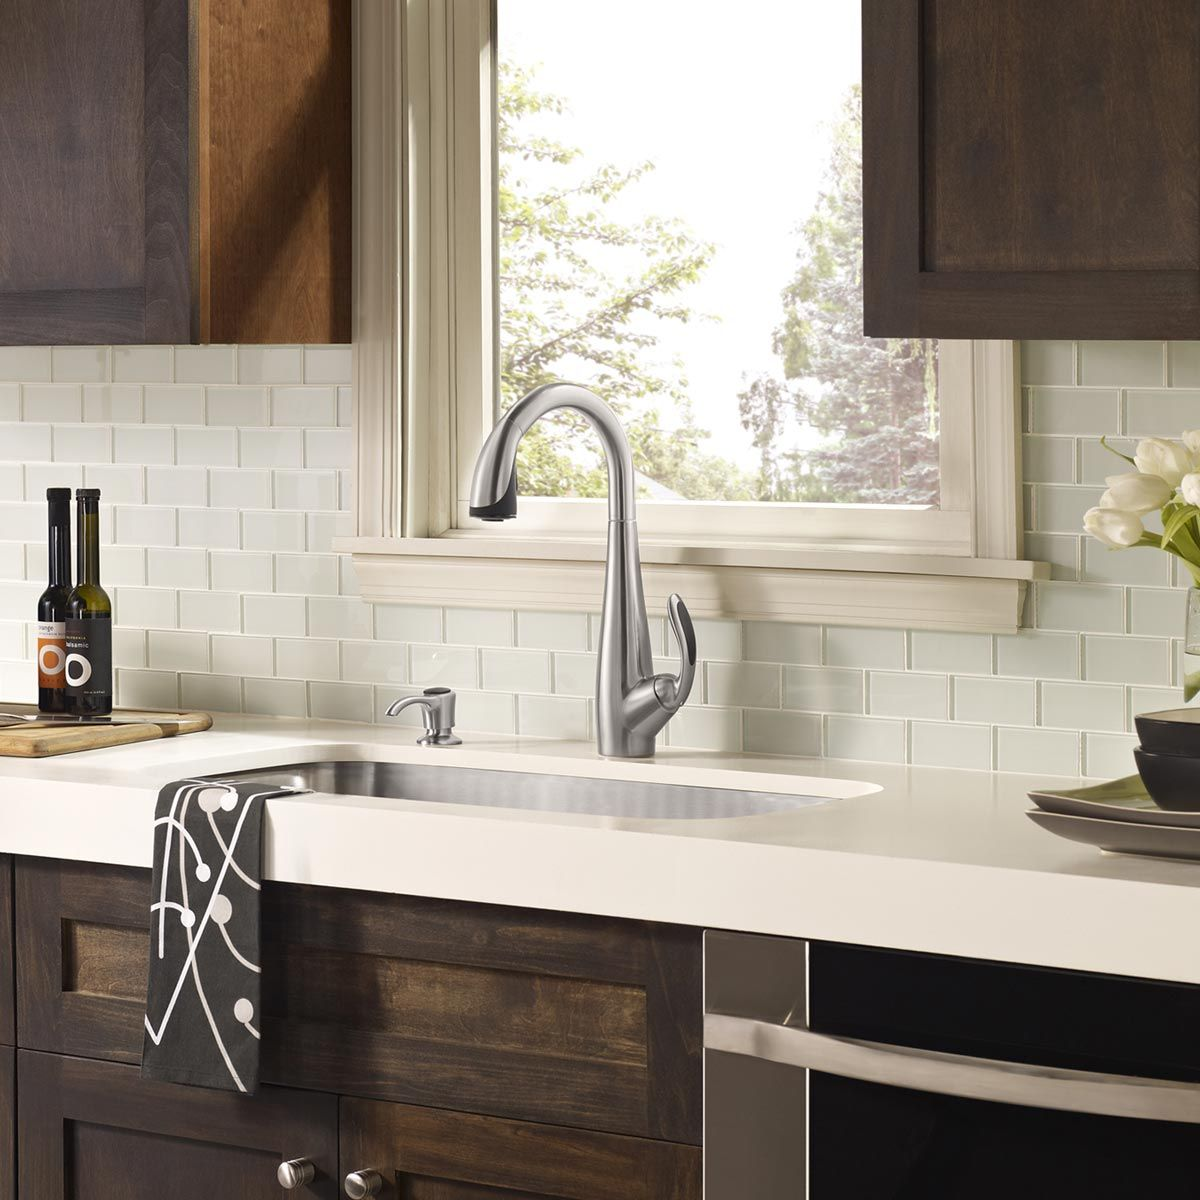 Tile Backsplash With White Cabinets white glass tile backsplash, white countertop with dark wood